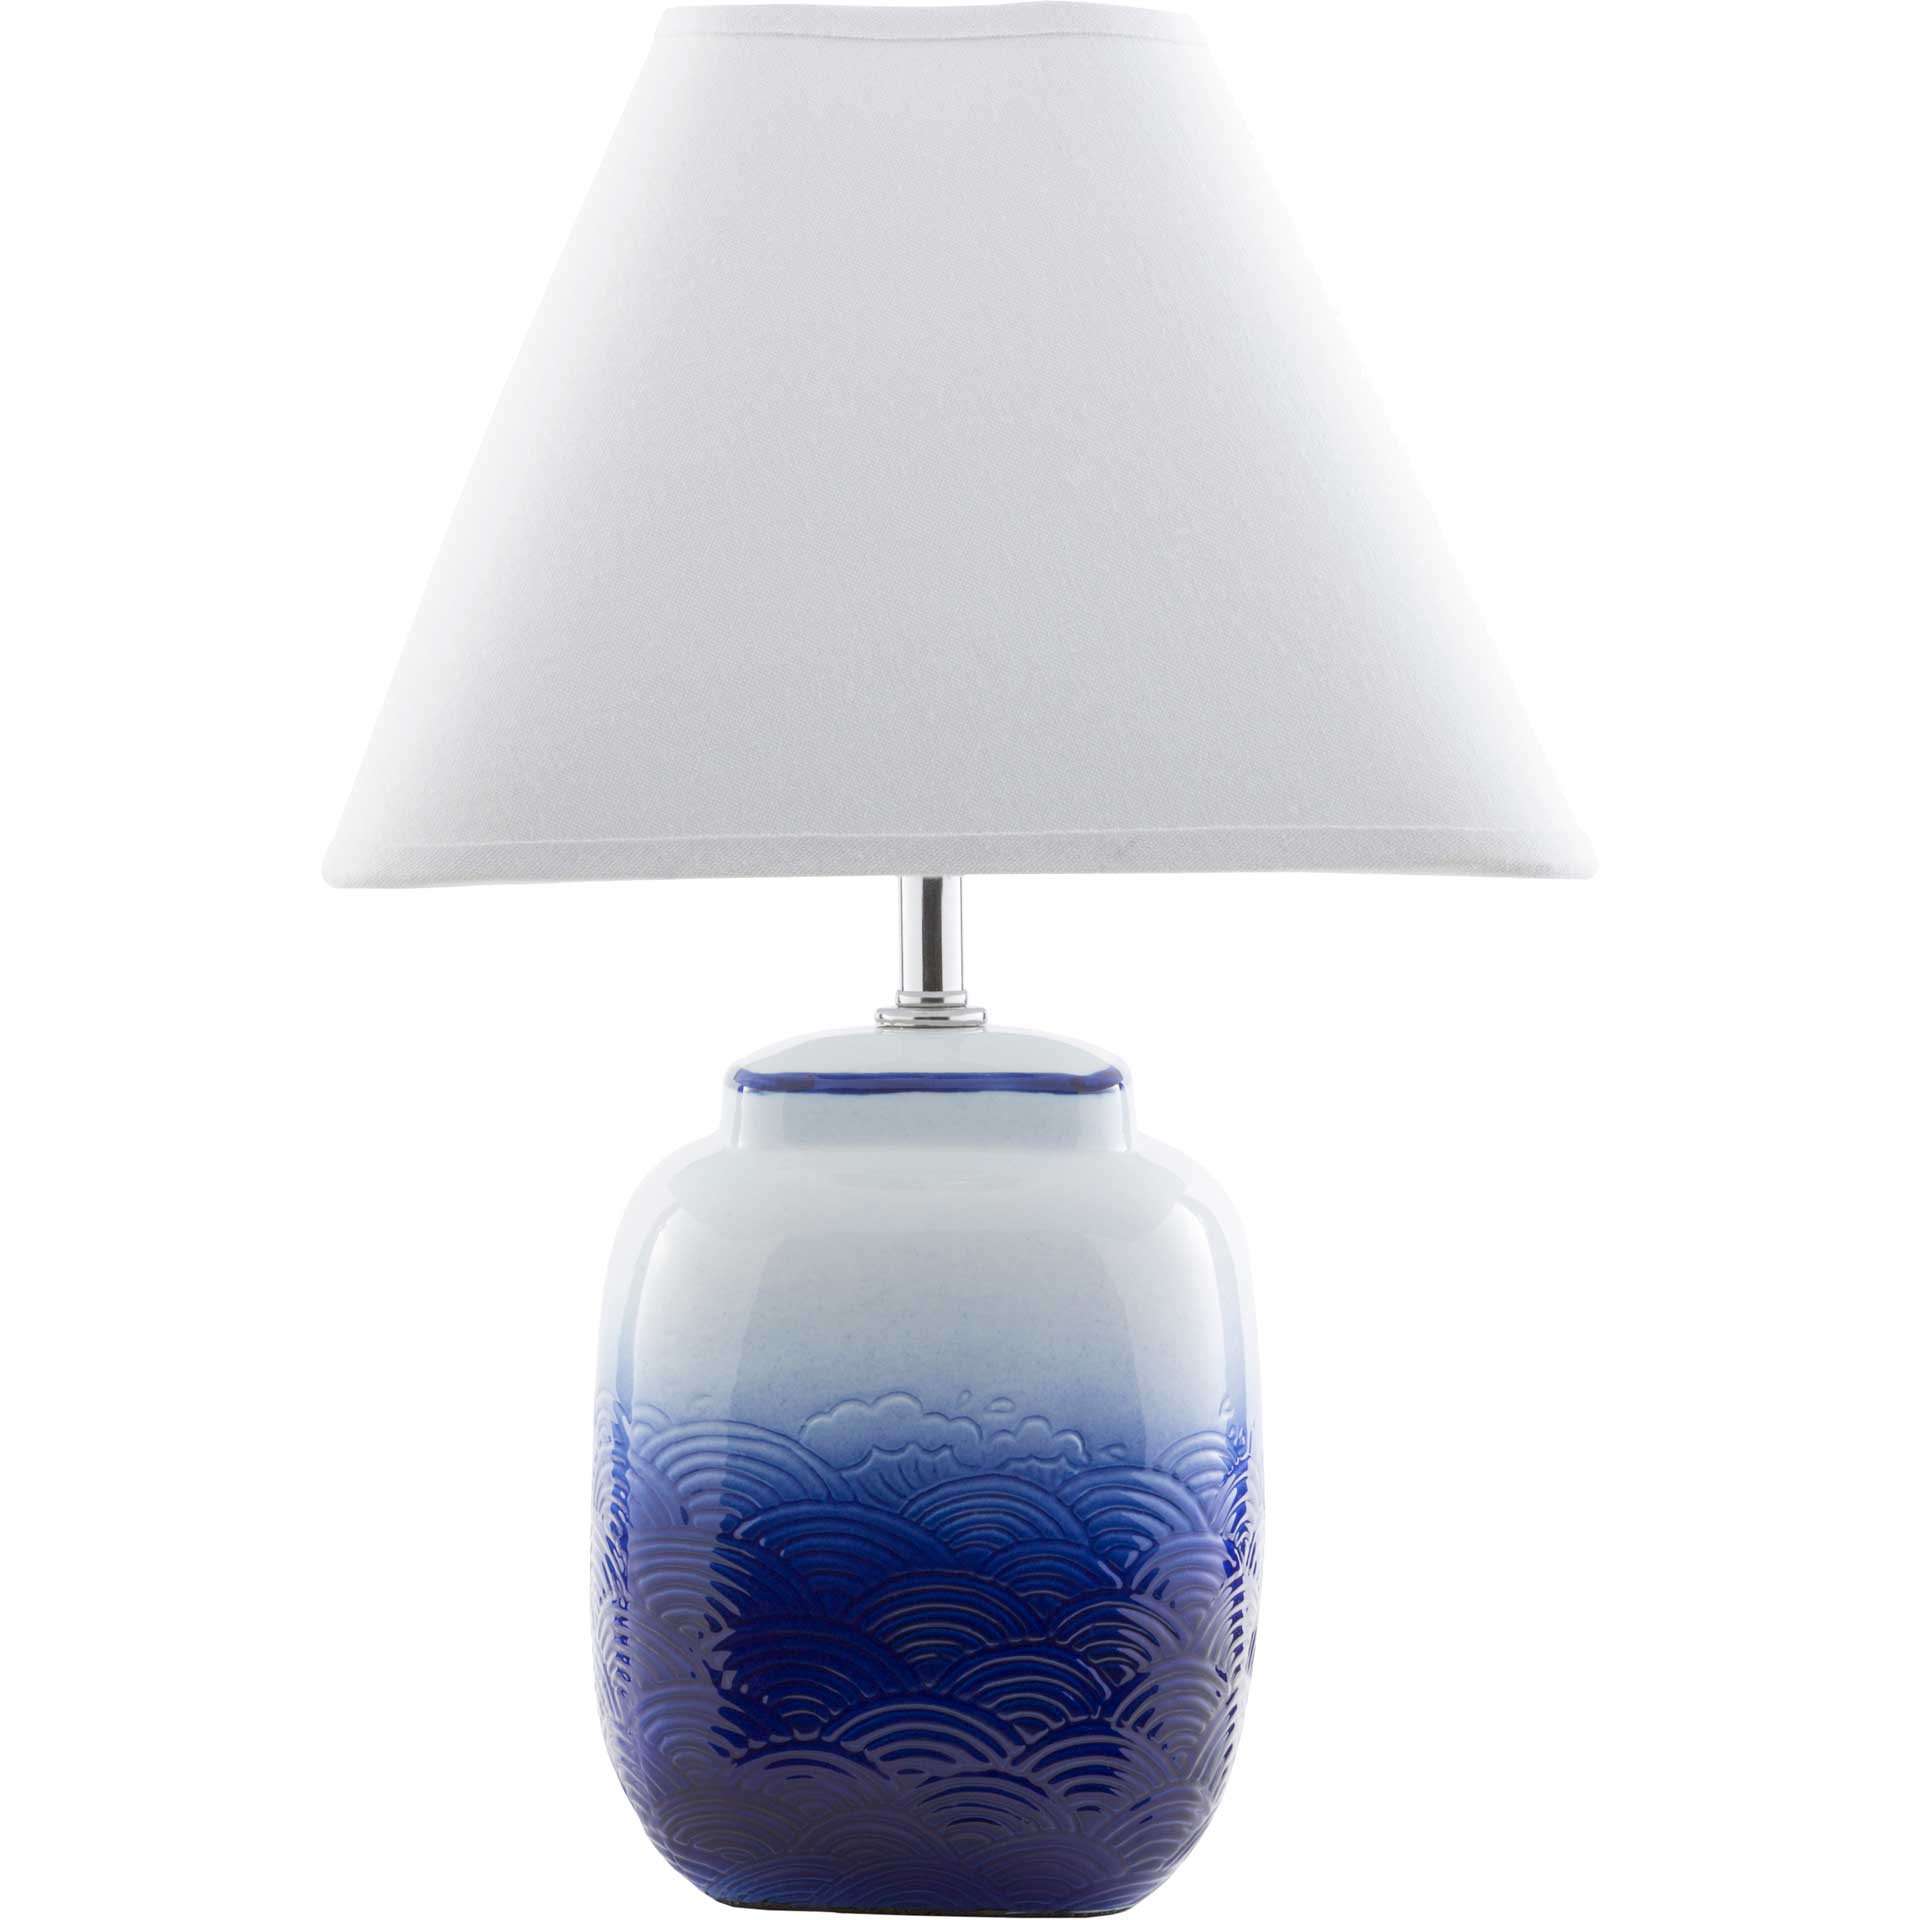 Azalea Table Lamp Navy/White